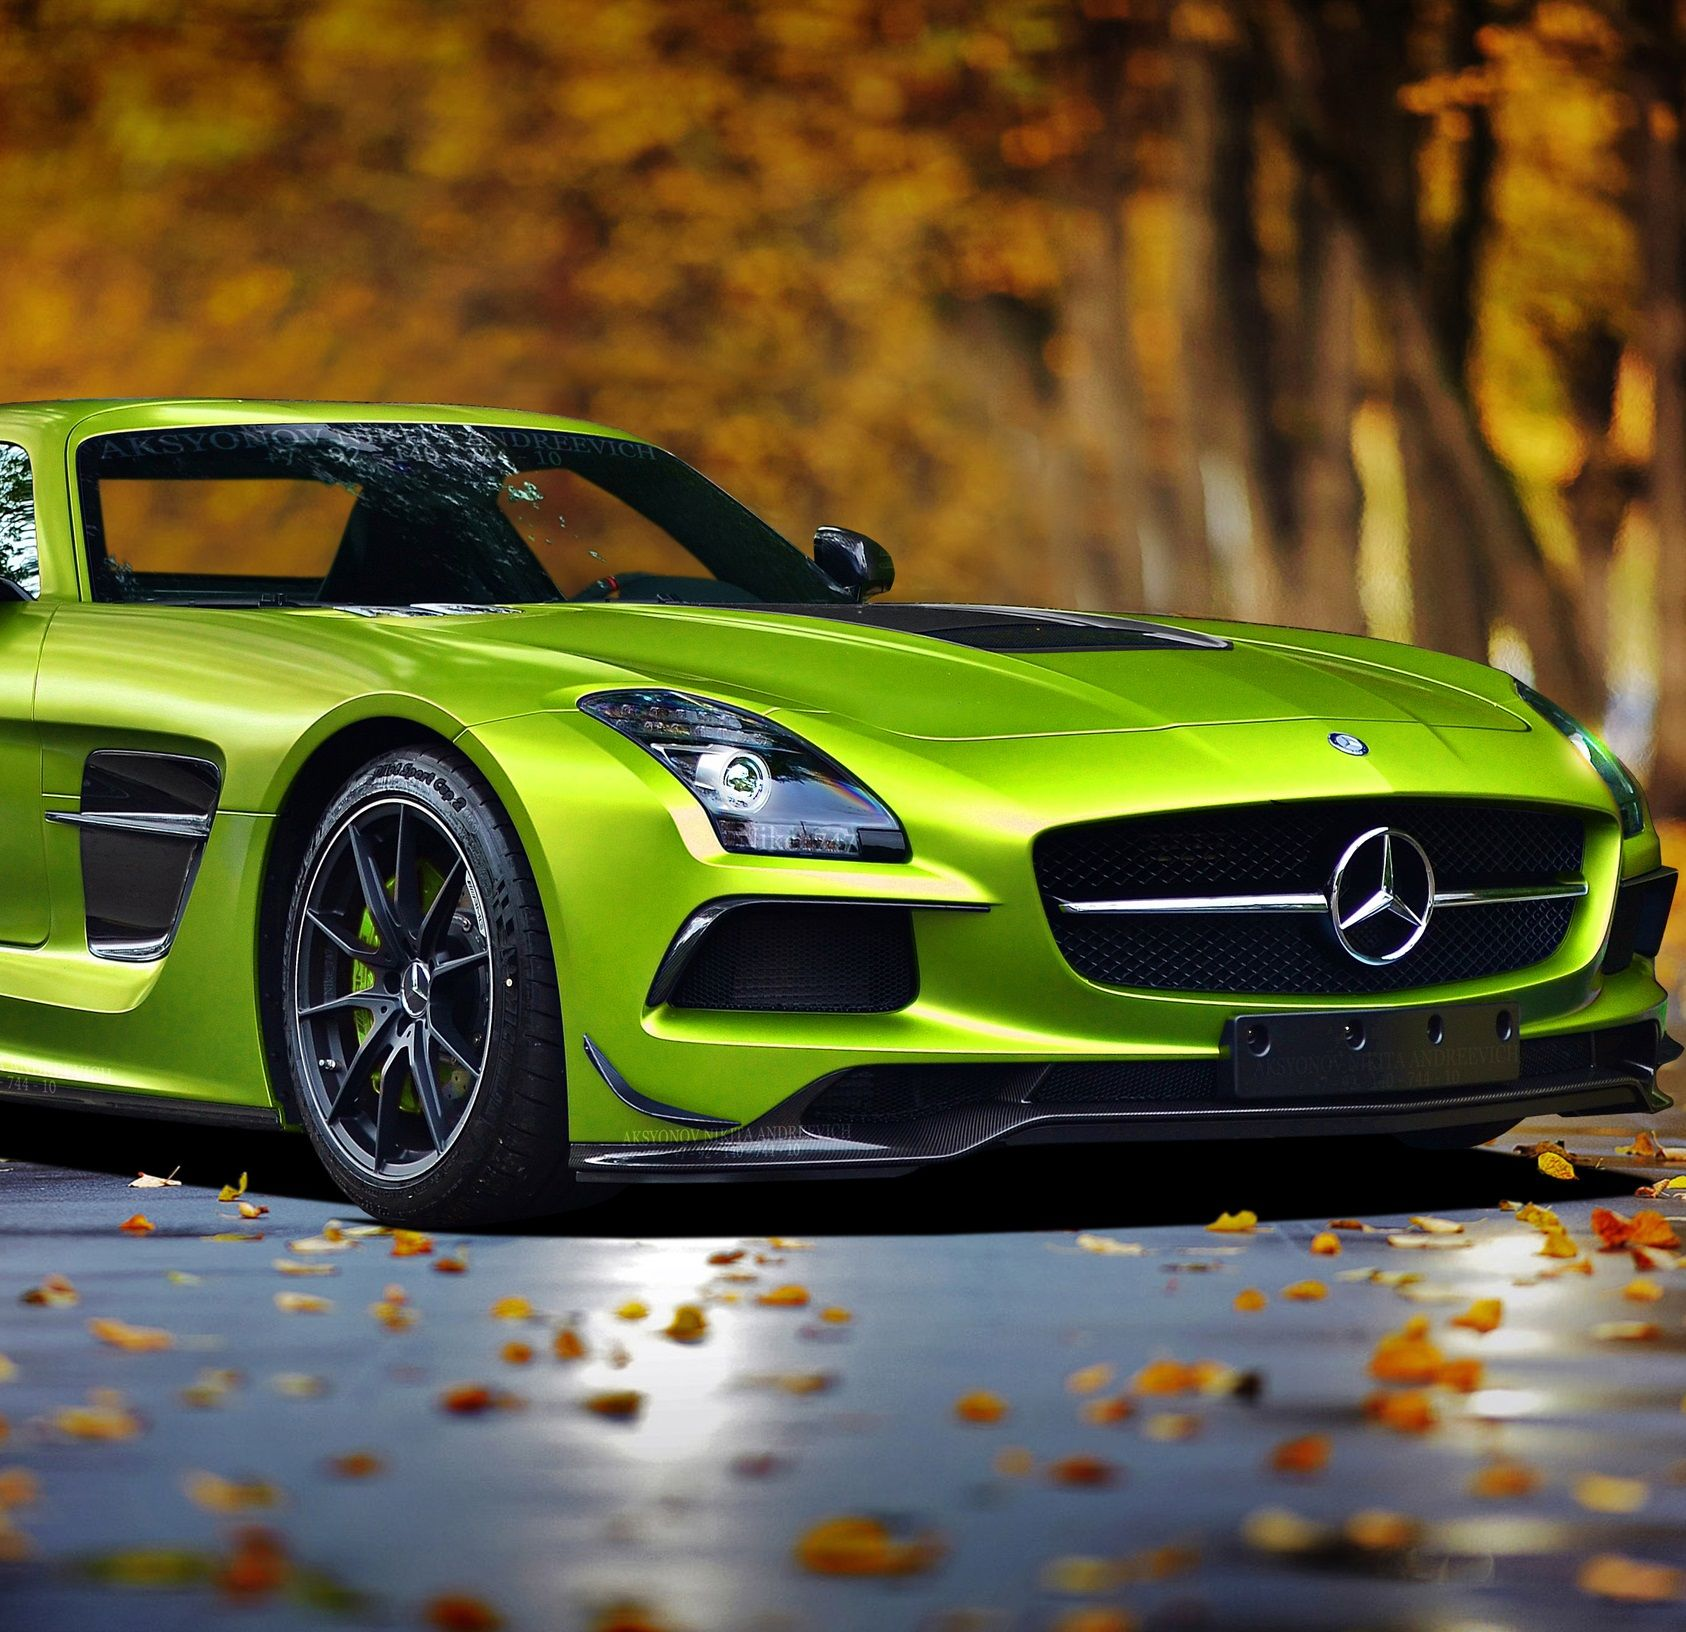 Lime Green Mercedes Benz Sls Carflash Zoom Zoom